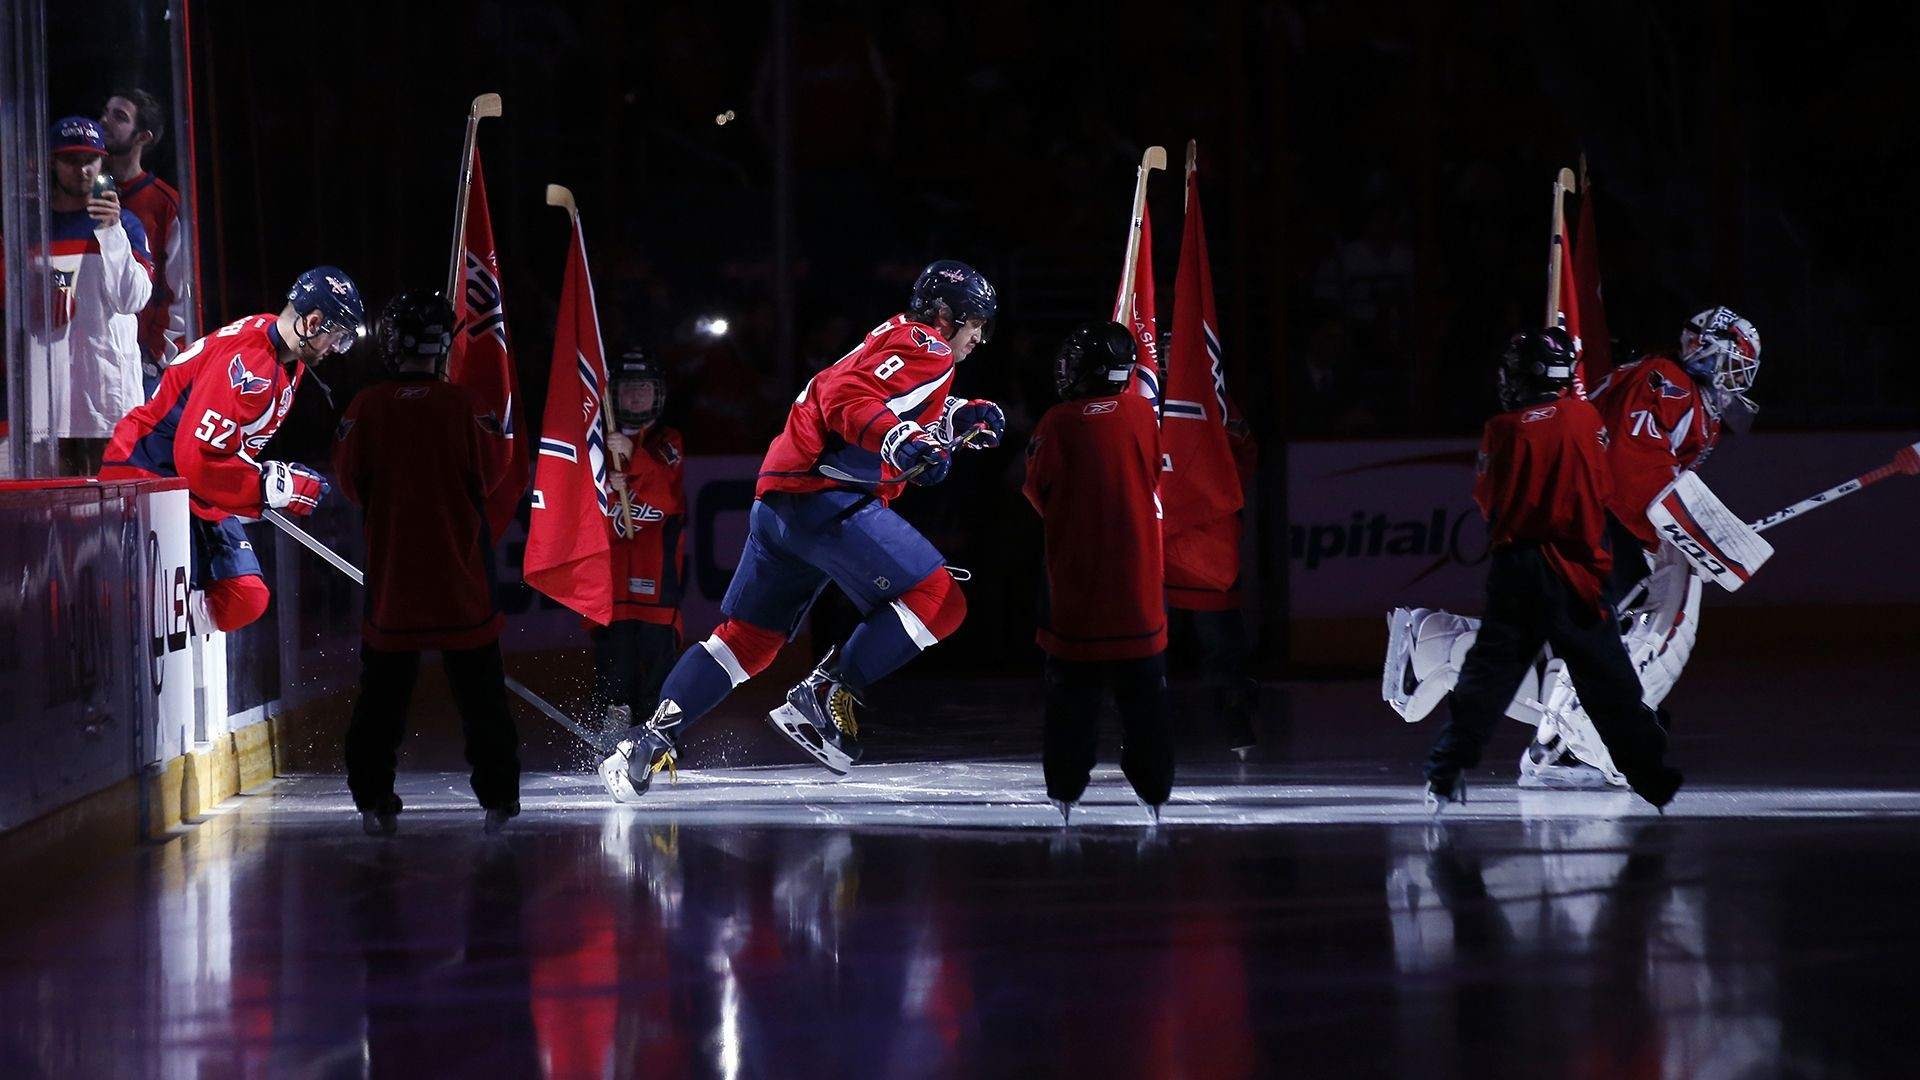 … hd wallpapers backgrounds wallpaper abyss; washington capitals  backgrounds 4k download …